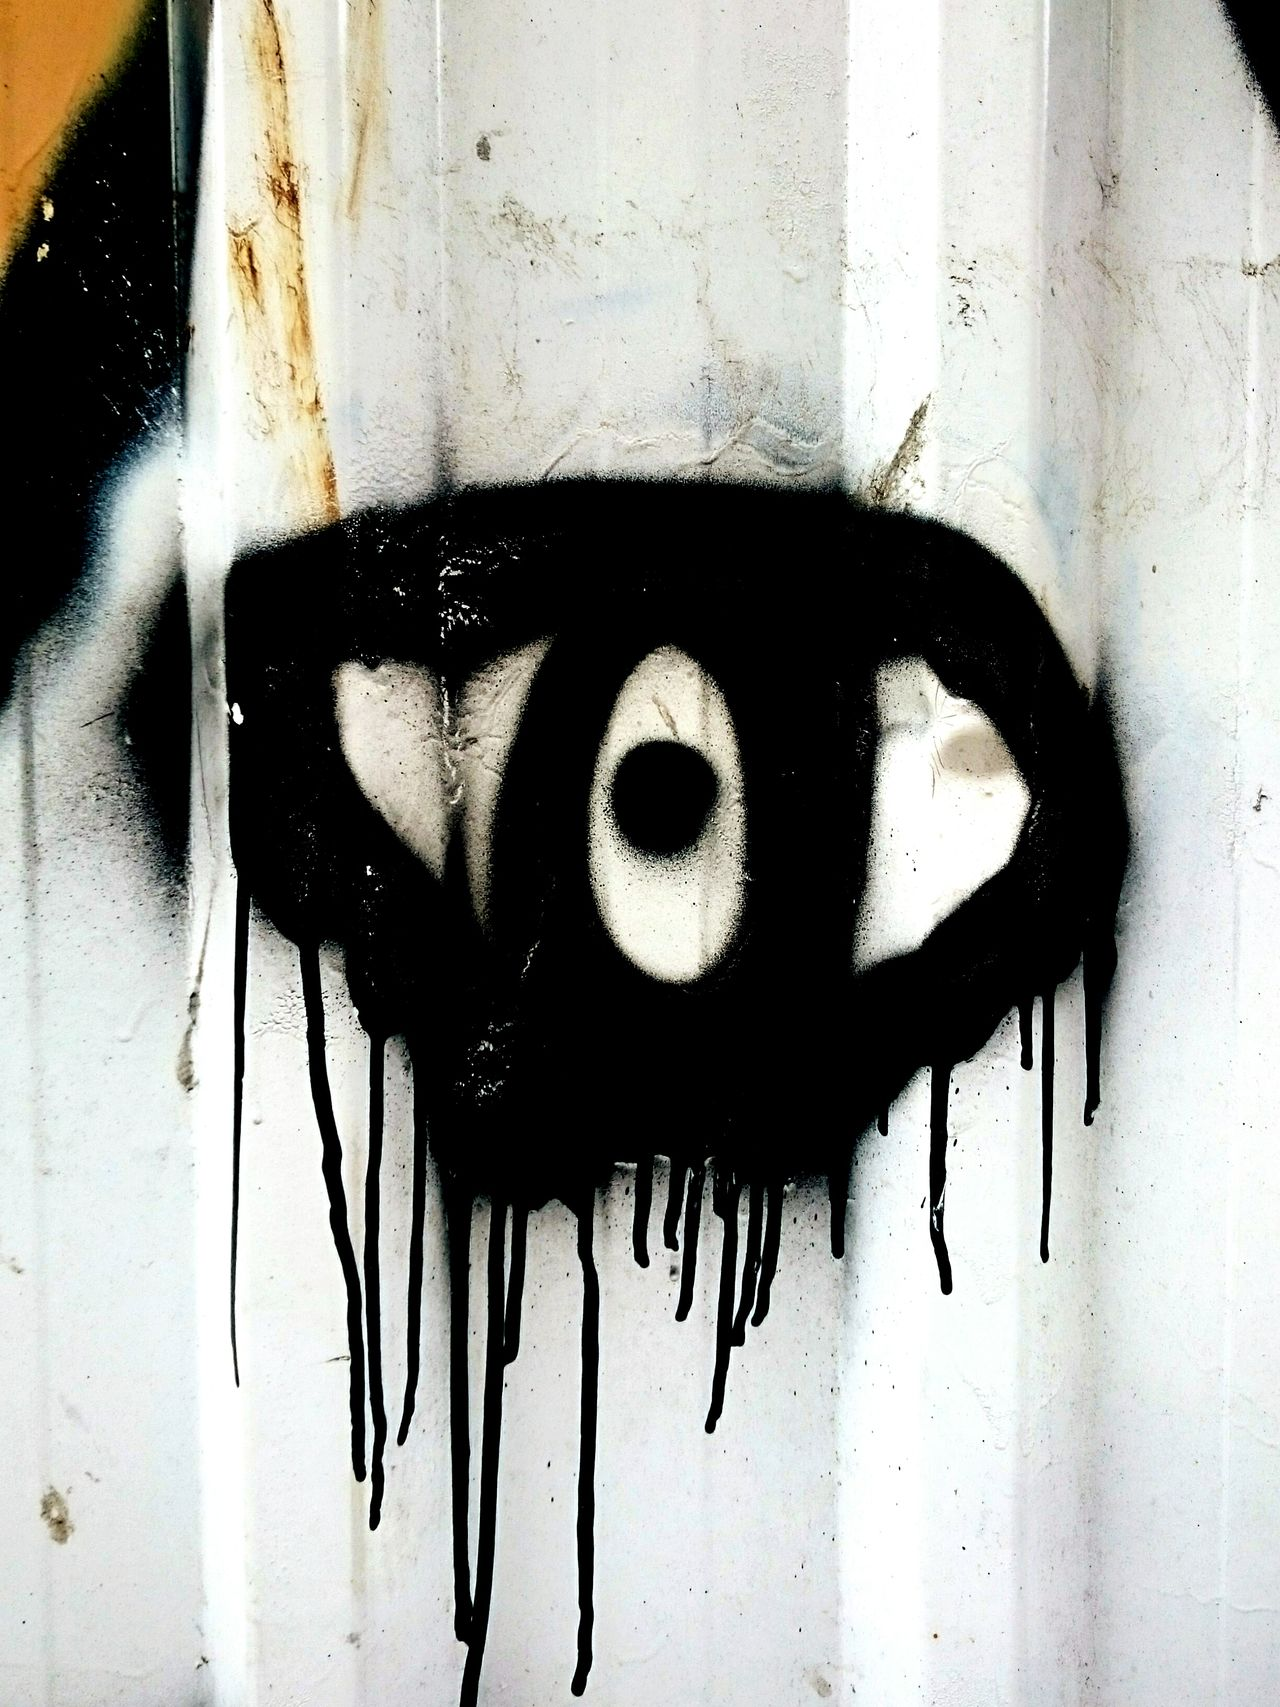 Close-up Human Eye Full Frame Creativity Eye Street Photography Painted Image Textures And Surfaces Aerosol Urbanphotography Amusement  Building Exterior Wall - Building Feature Graffiti Creativity Streetphotography Urban Landscape Backgrounds Ink